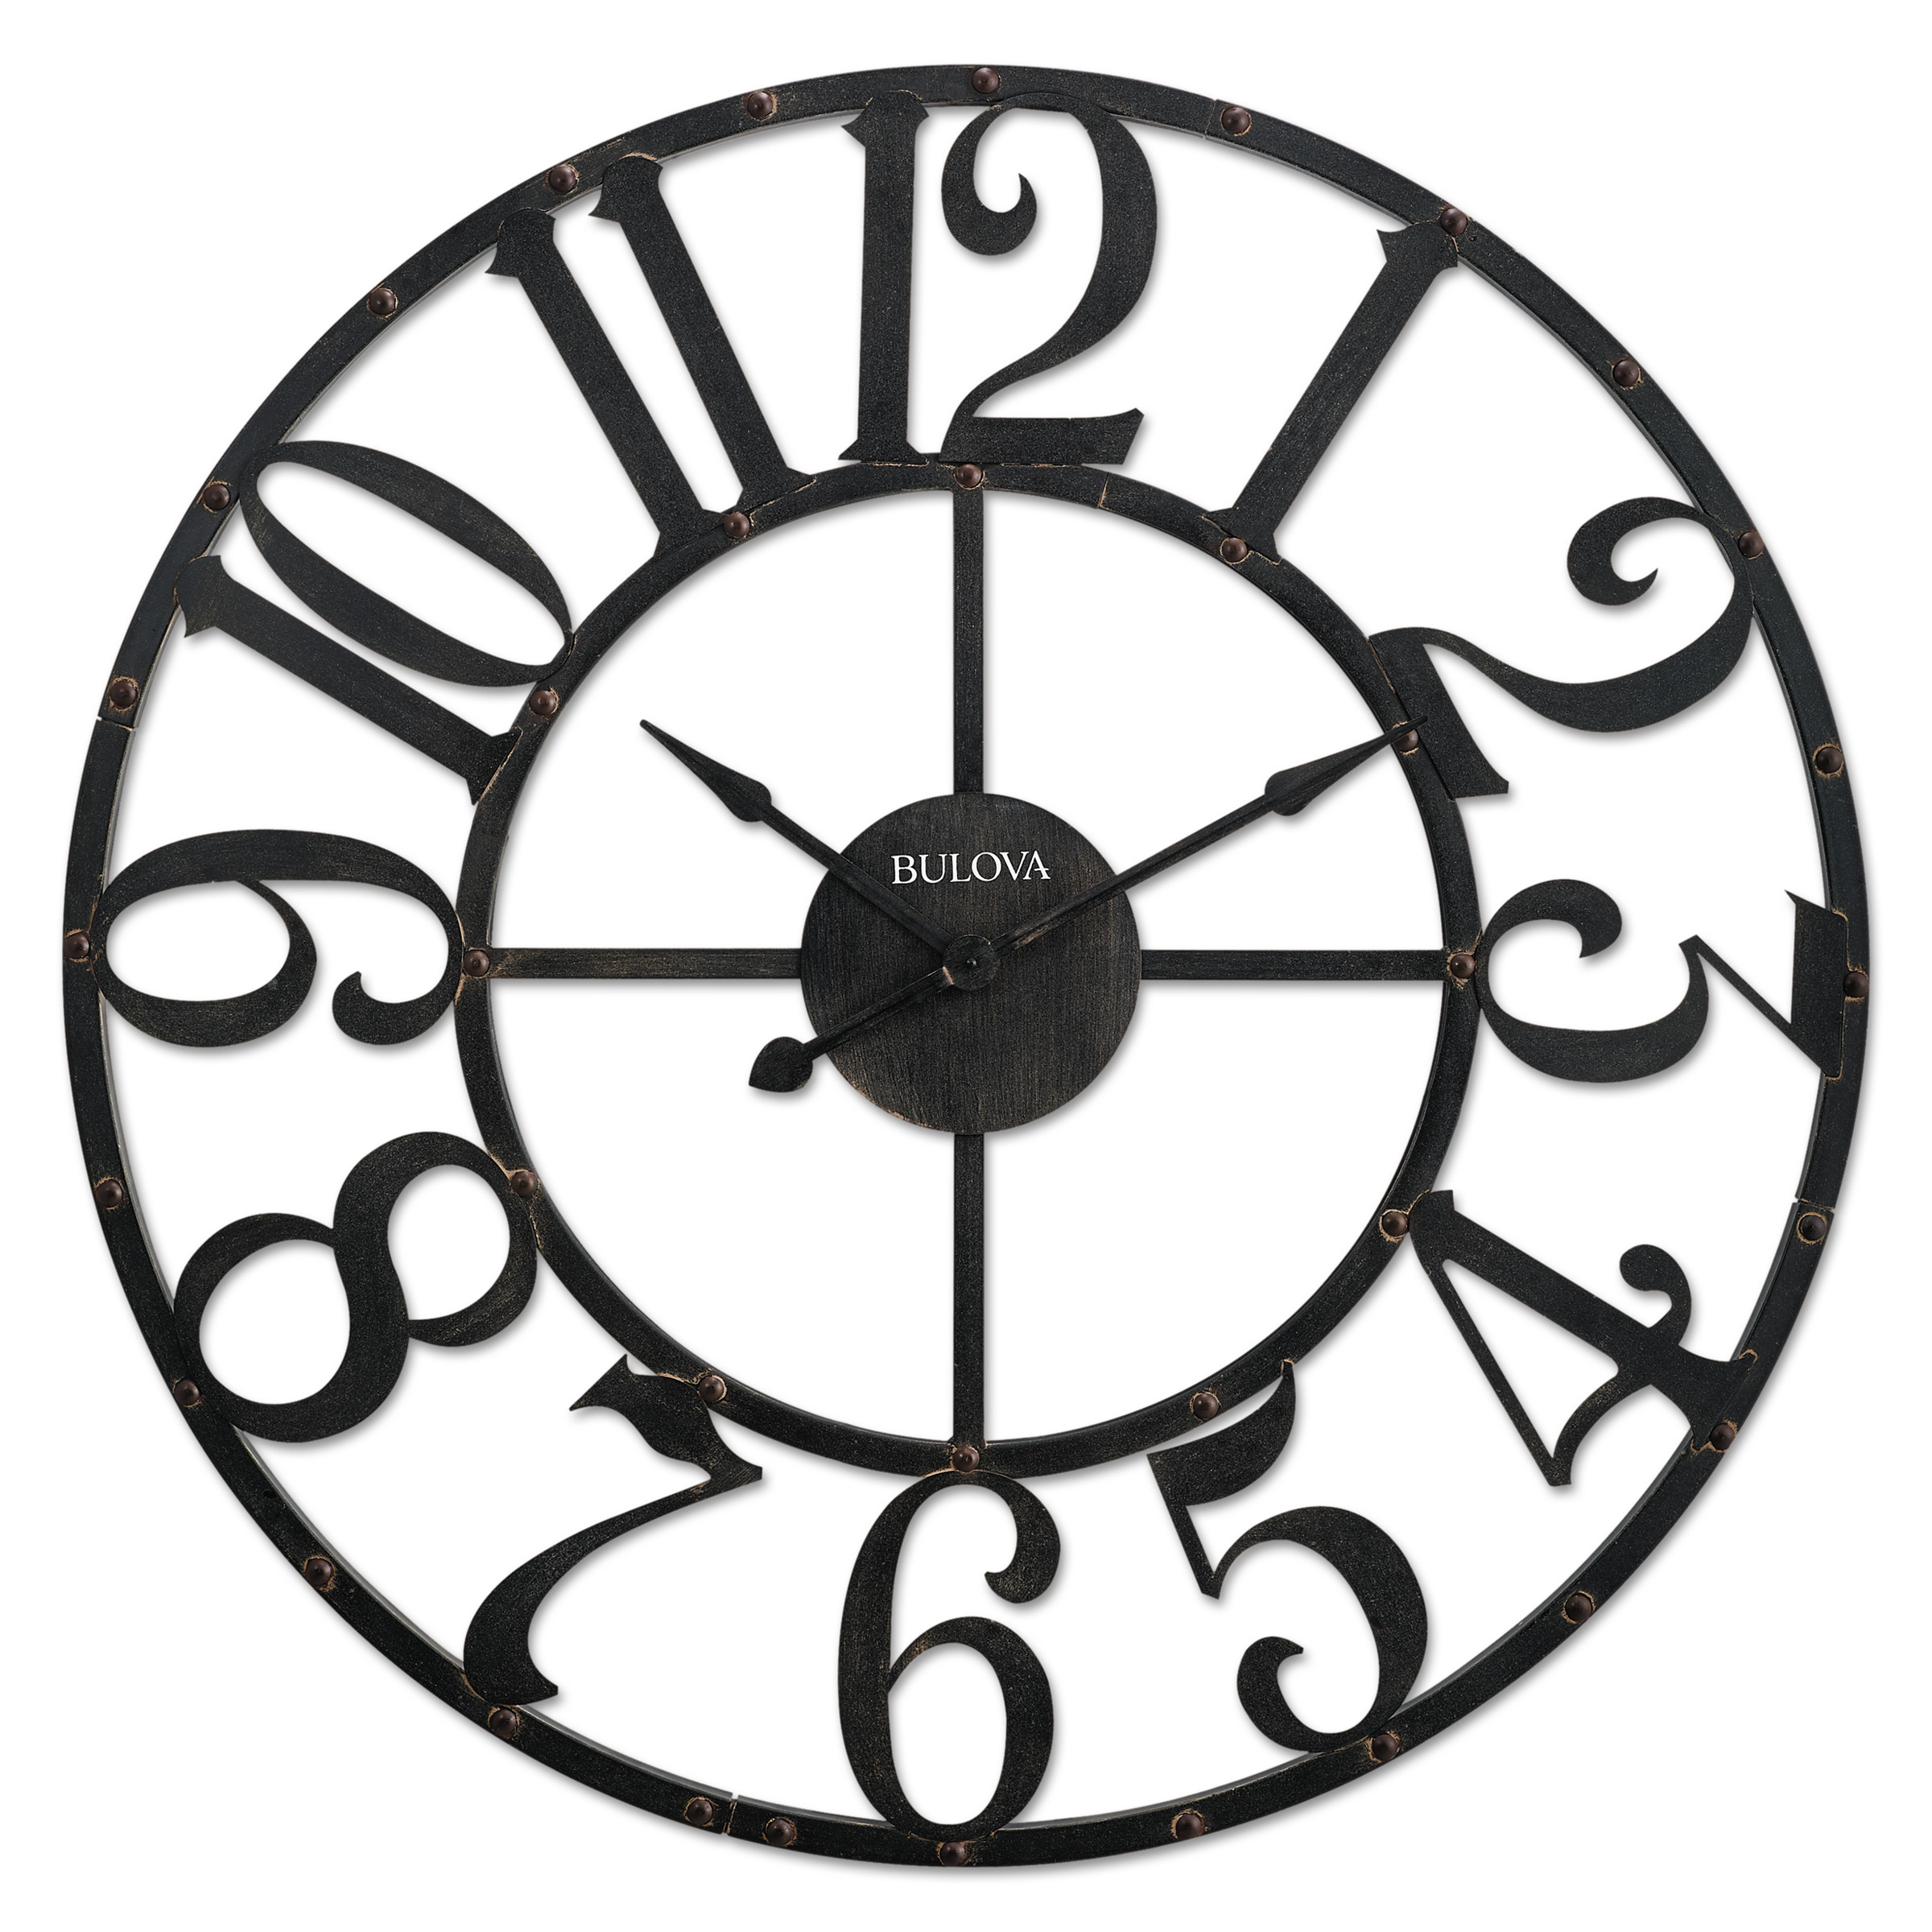 "Bulova Gabriel Wall Clock, 45"" Diameter, Rustic Brown"